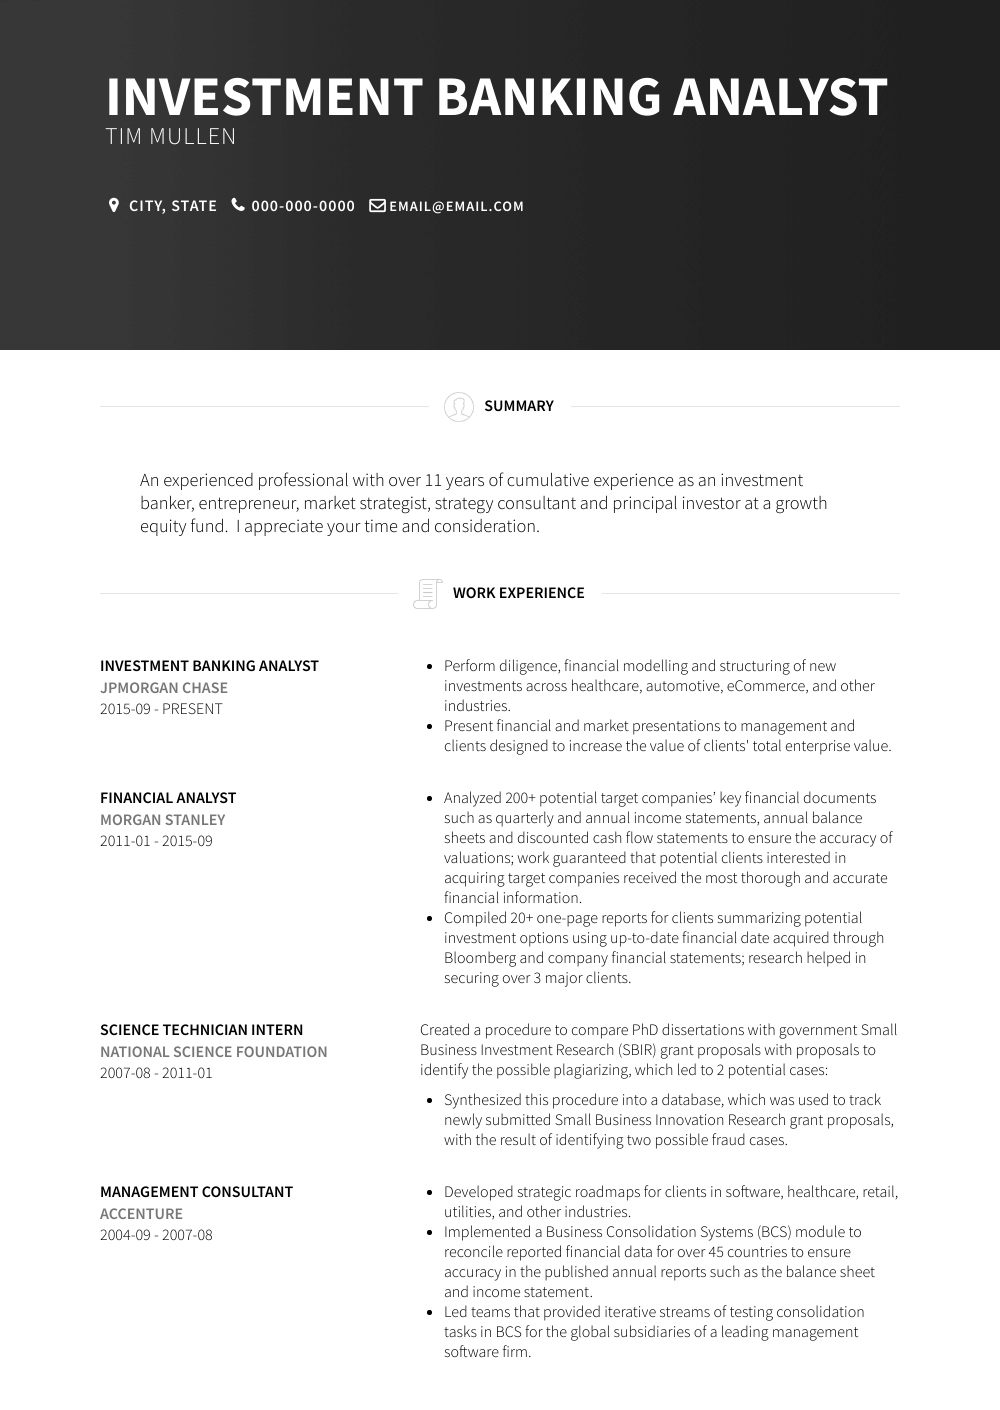 Investment Banking Analyst Resume Sample and Template